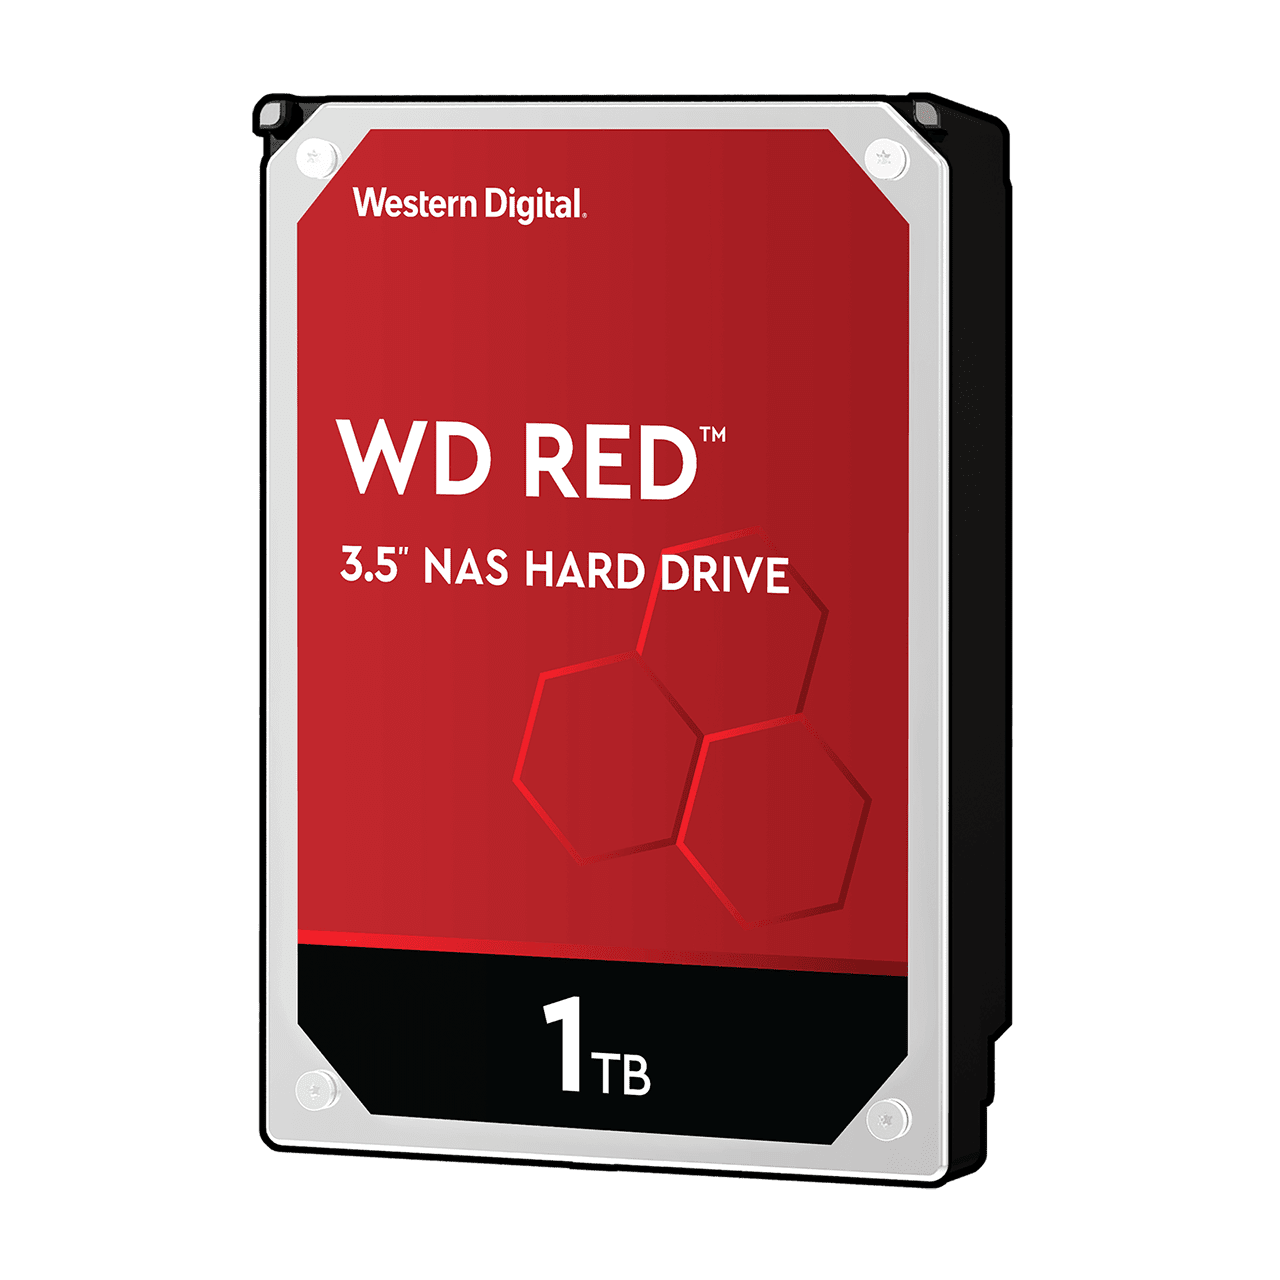 WD Red 1TB - Image1